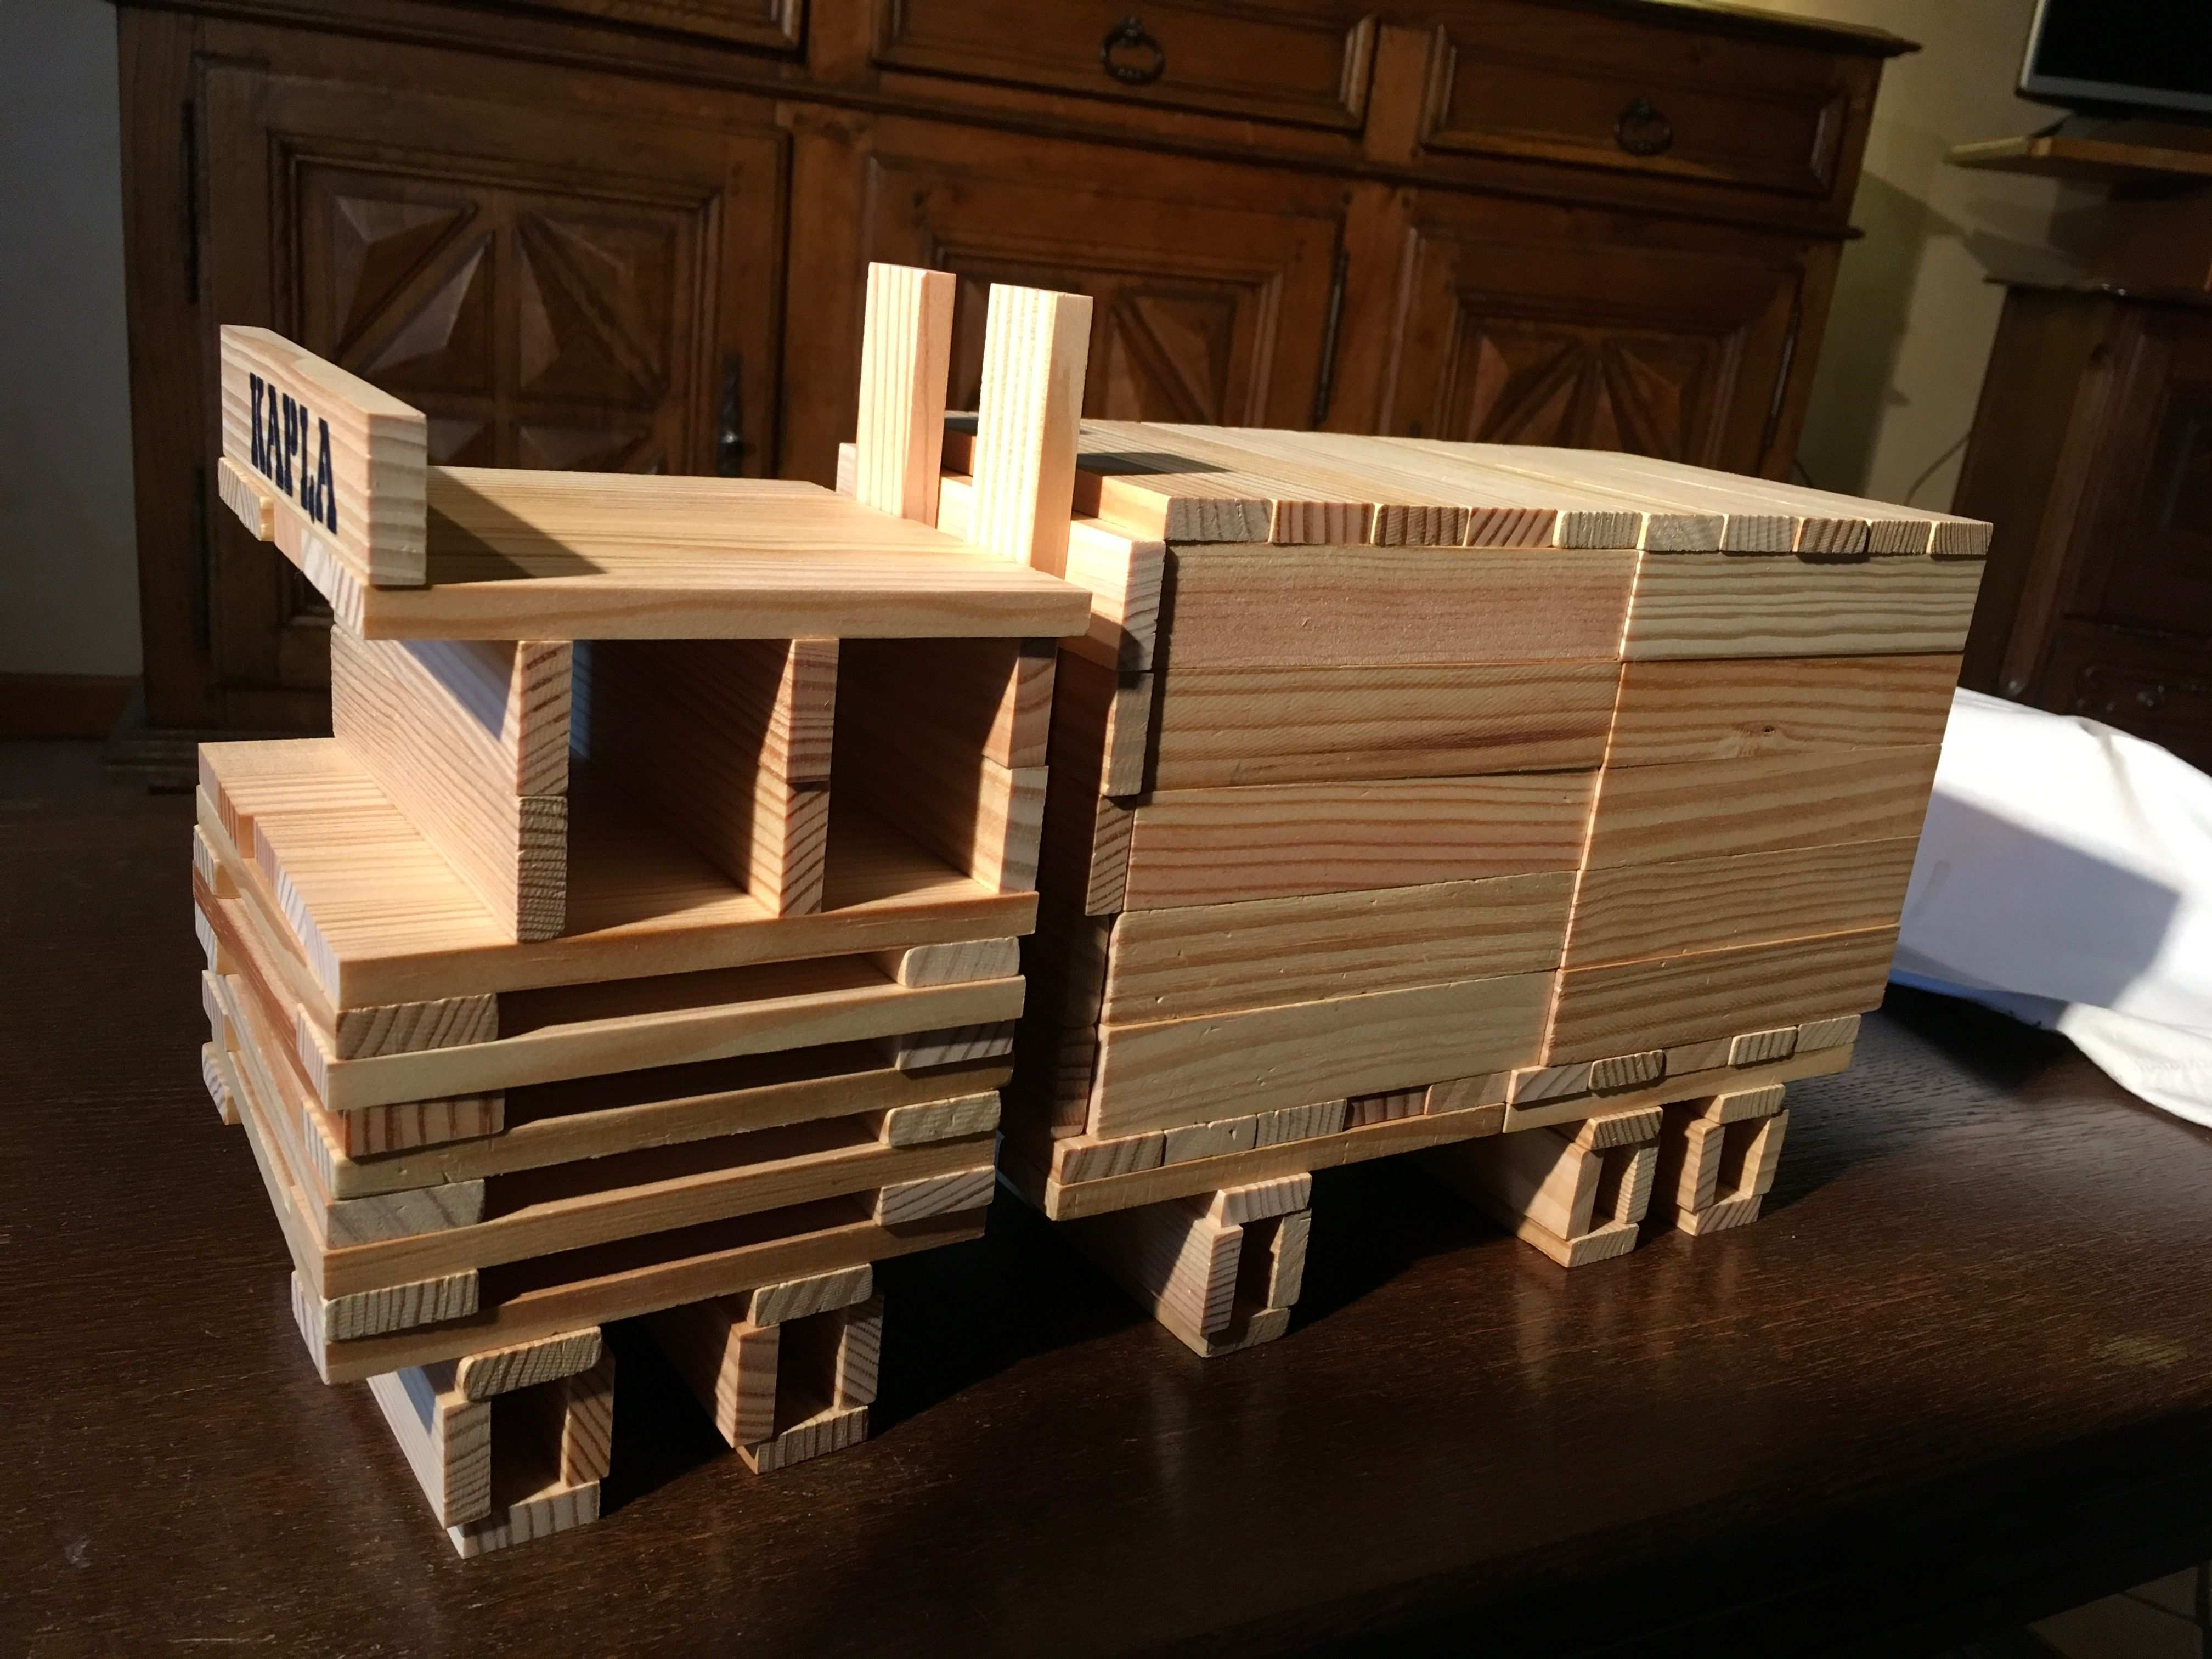 Pin By Sonia On Kleuters Keva Planks Wood Toys Construction For Kids